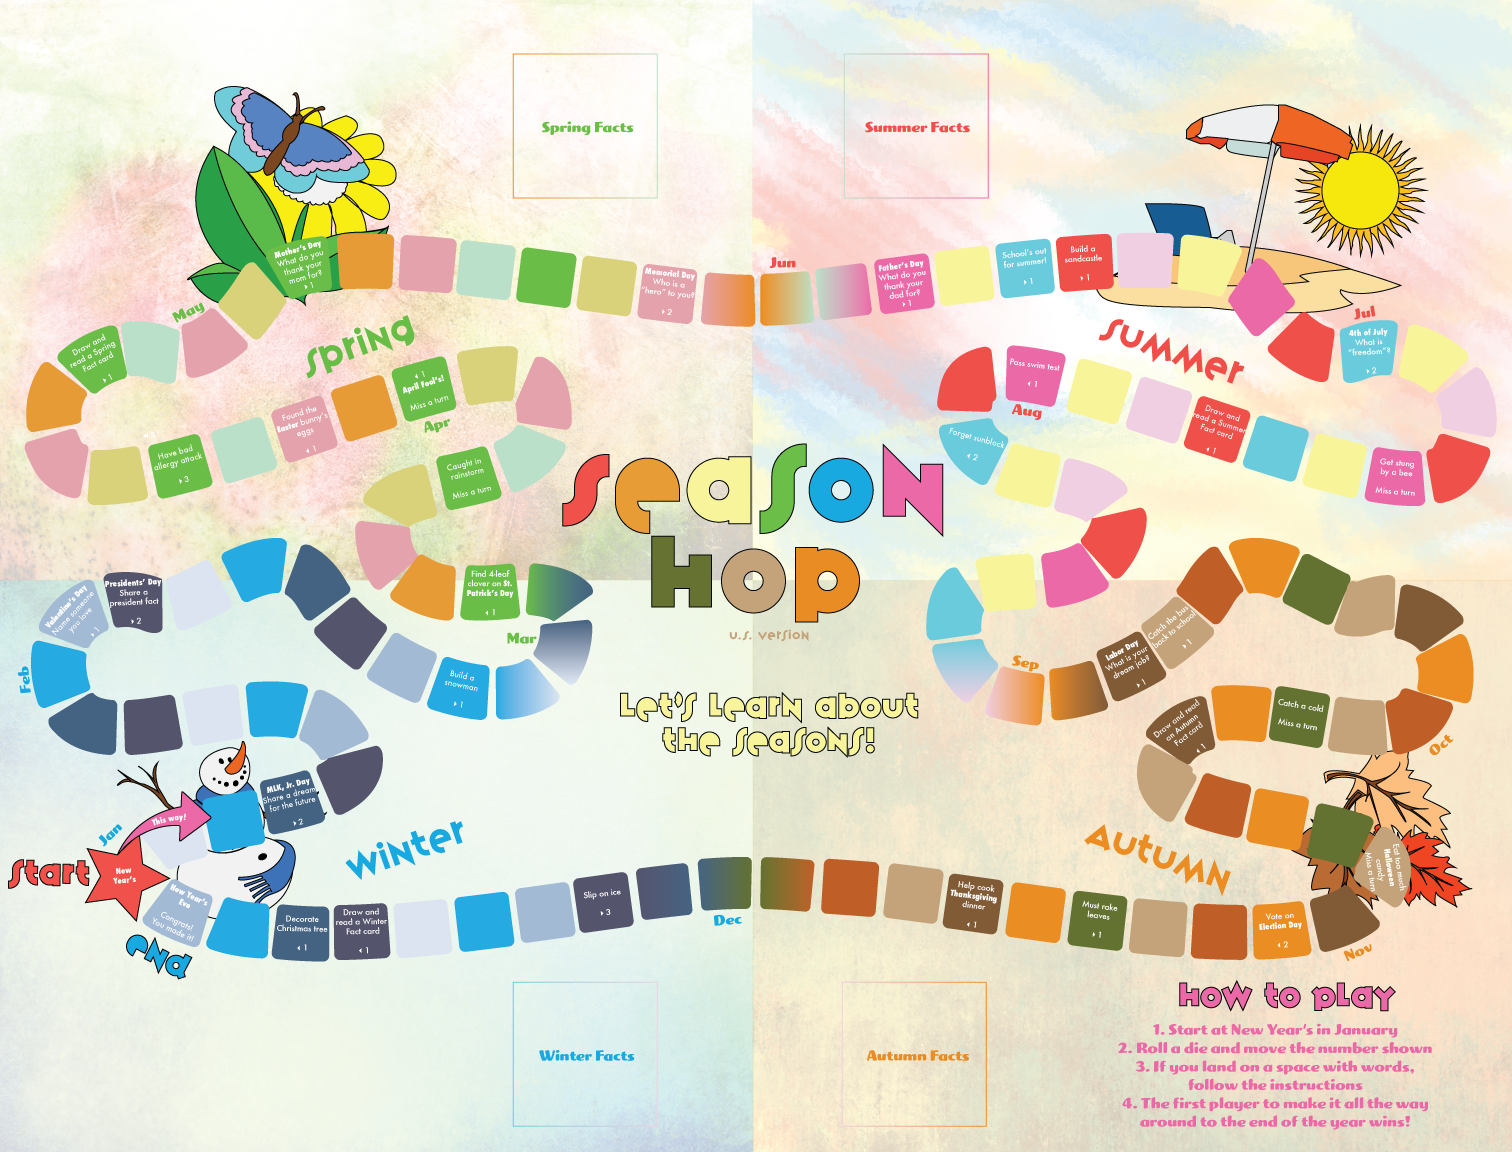 """Each corner of the board represents one of the four seasons, with various squares containing plays corresponding to activities typical of that season (e.g., """"Build a snowman"""" and move forward one space for winter)."""